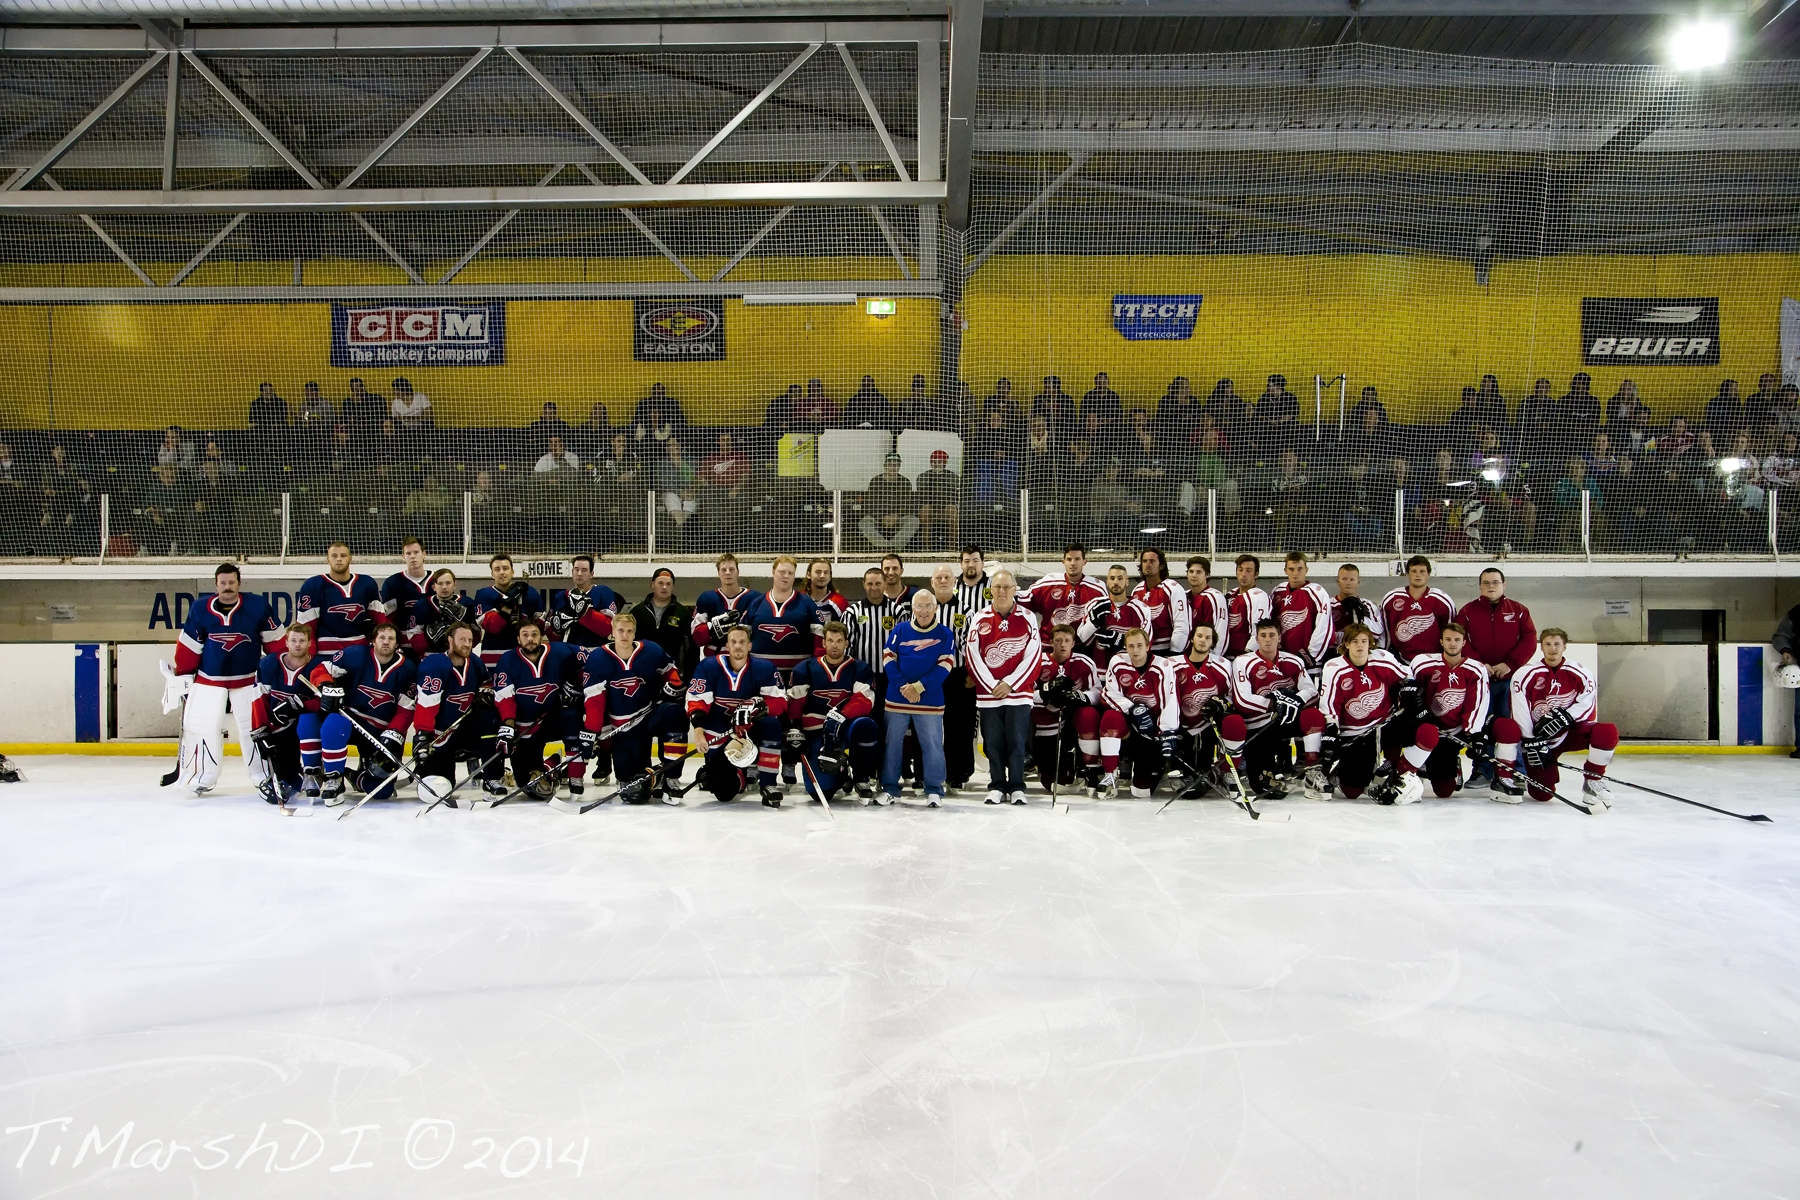 Teams replicate 1964 1st game photo